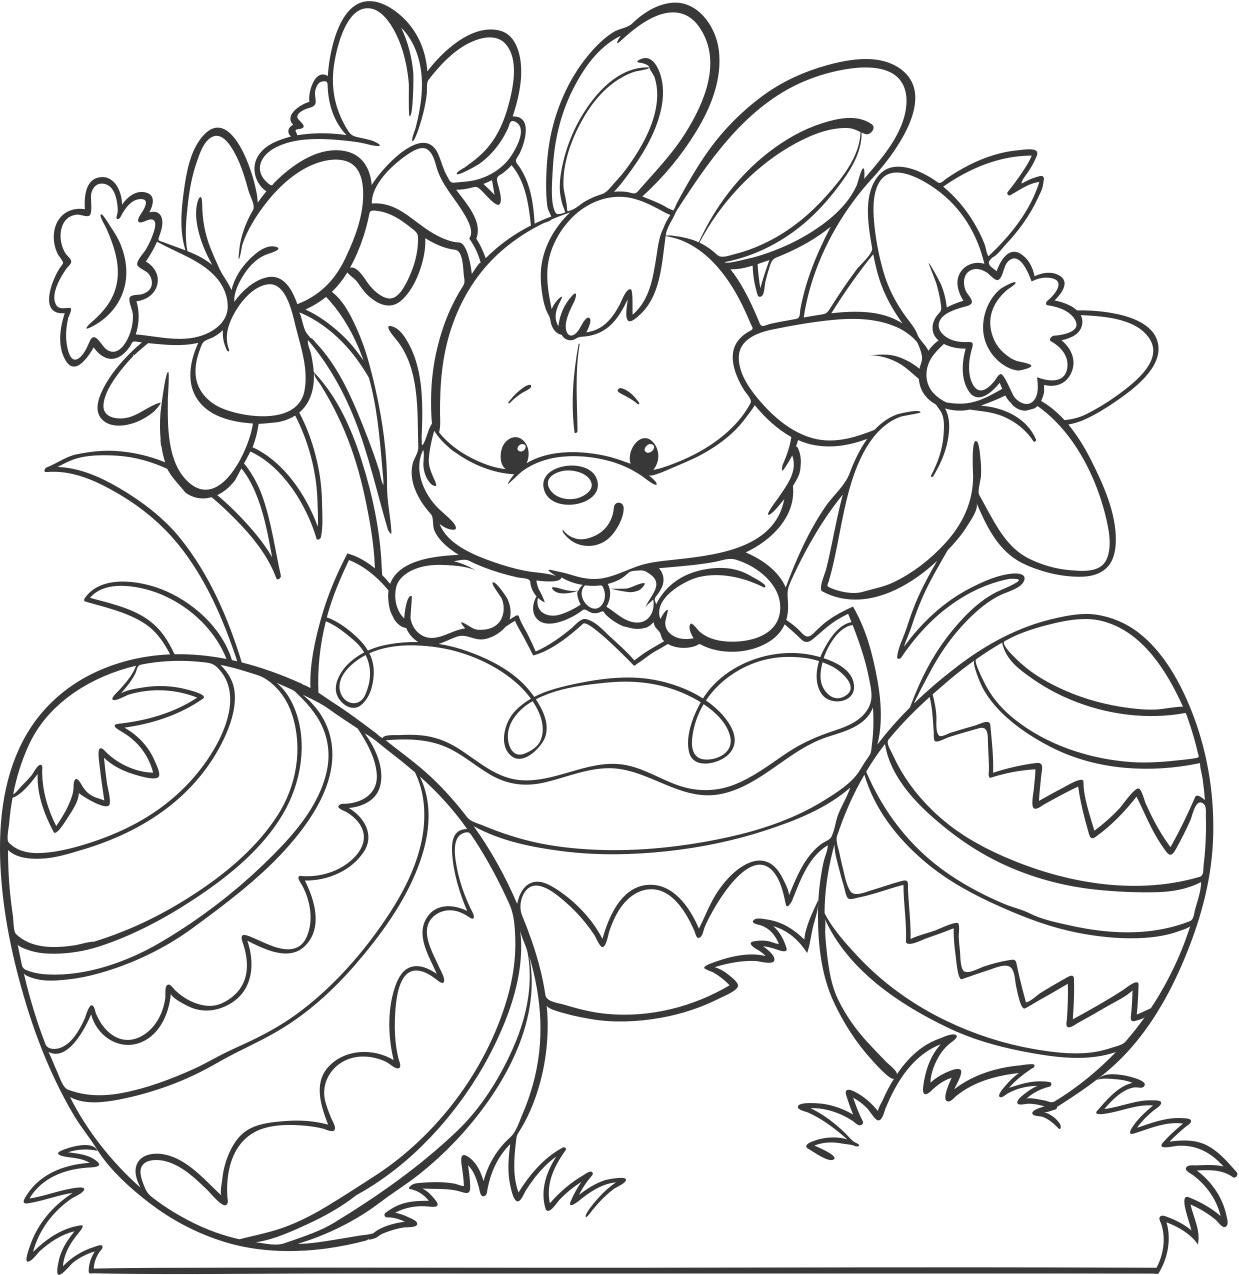 kids easter colouring pages easter colouring download print what matters pages easter kids colouring